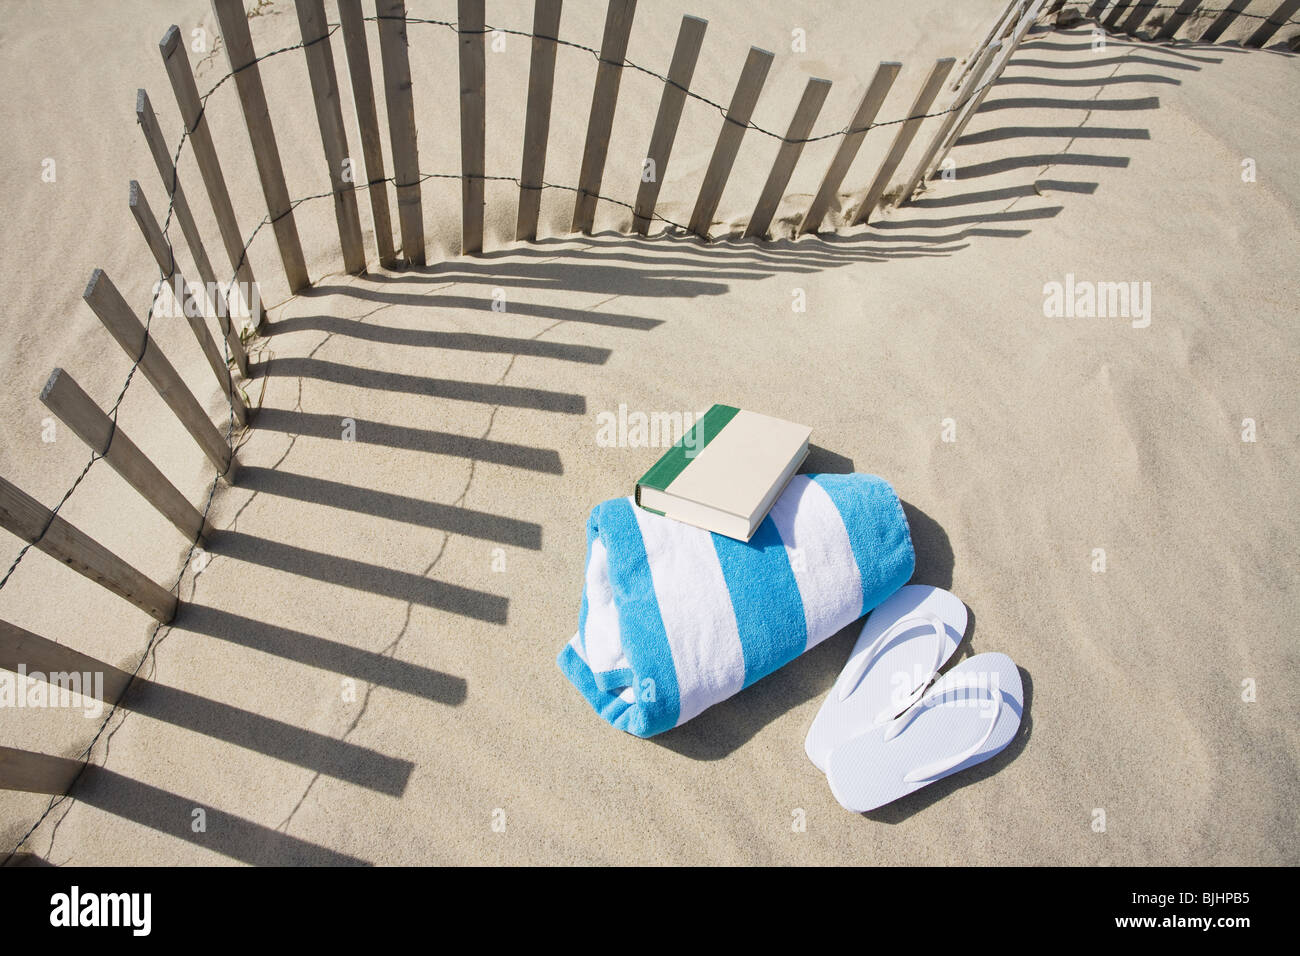 Fence on the beach - Stock Image